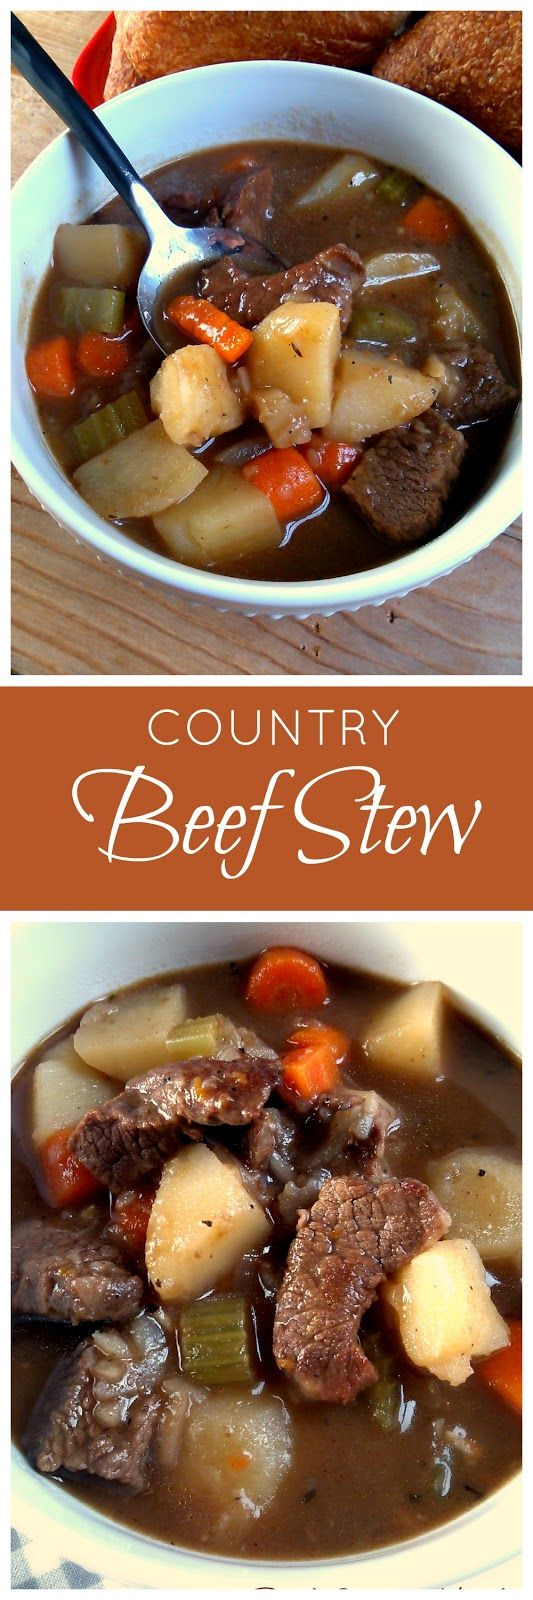 Country Beef Stew - a hearty homemade stew made with beef, potatoes, carrots and onion. Can be made on the stove or crock pot!